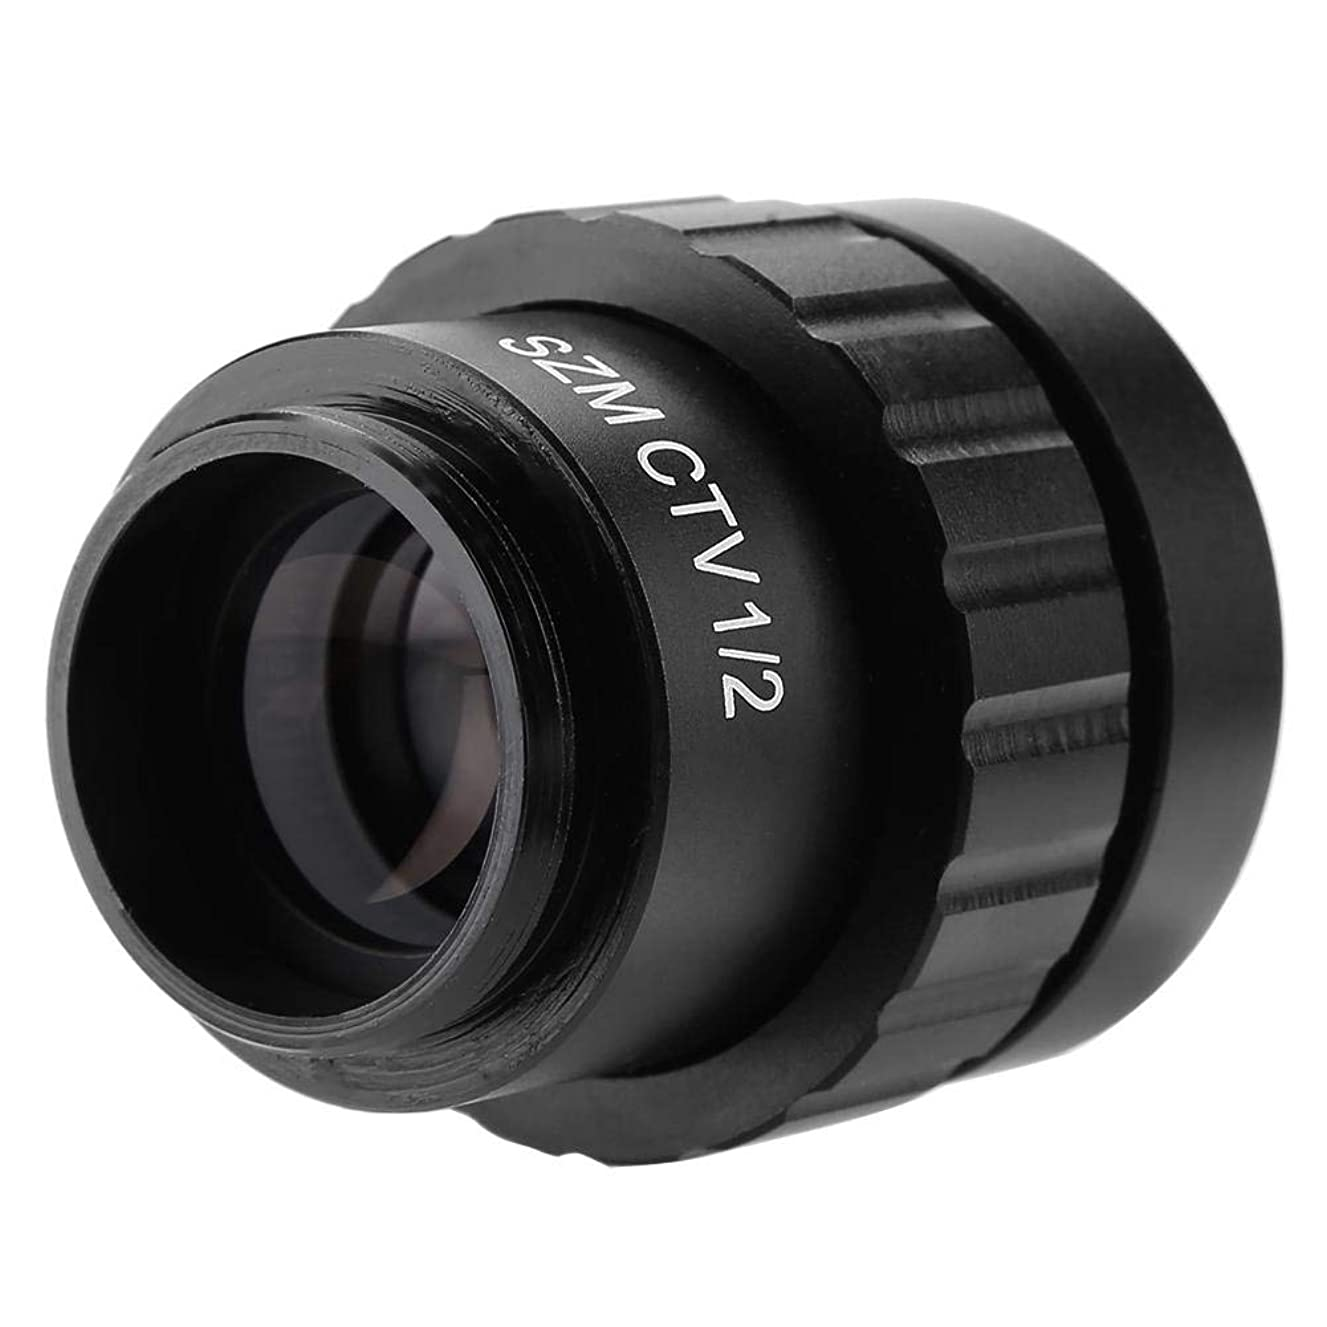 Asixx Objective Lens, Monocular Telescope Viewing Objective Lens or 0.5X C-Mount Objective Lens 1/2 CTV Adapter for SZM Video Digital Camera Trinocular Stereo MICR